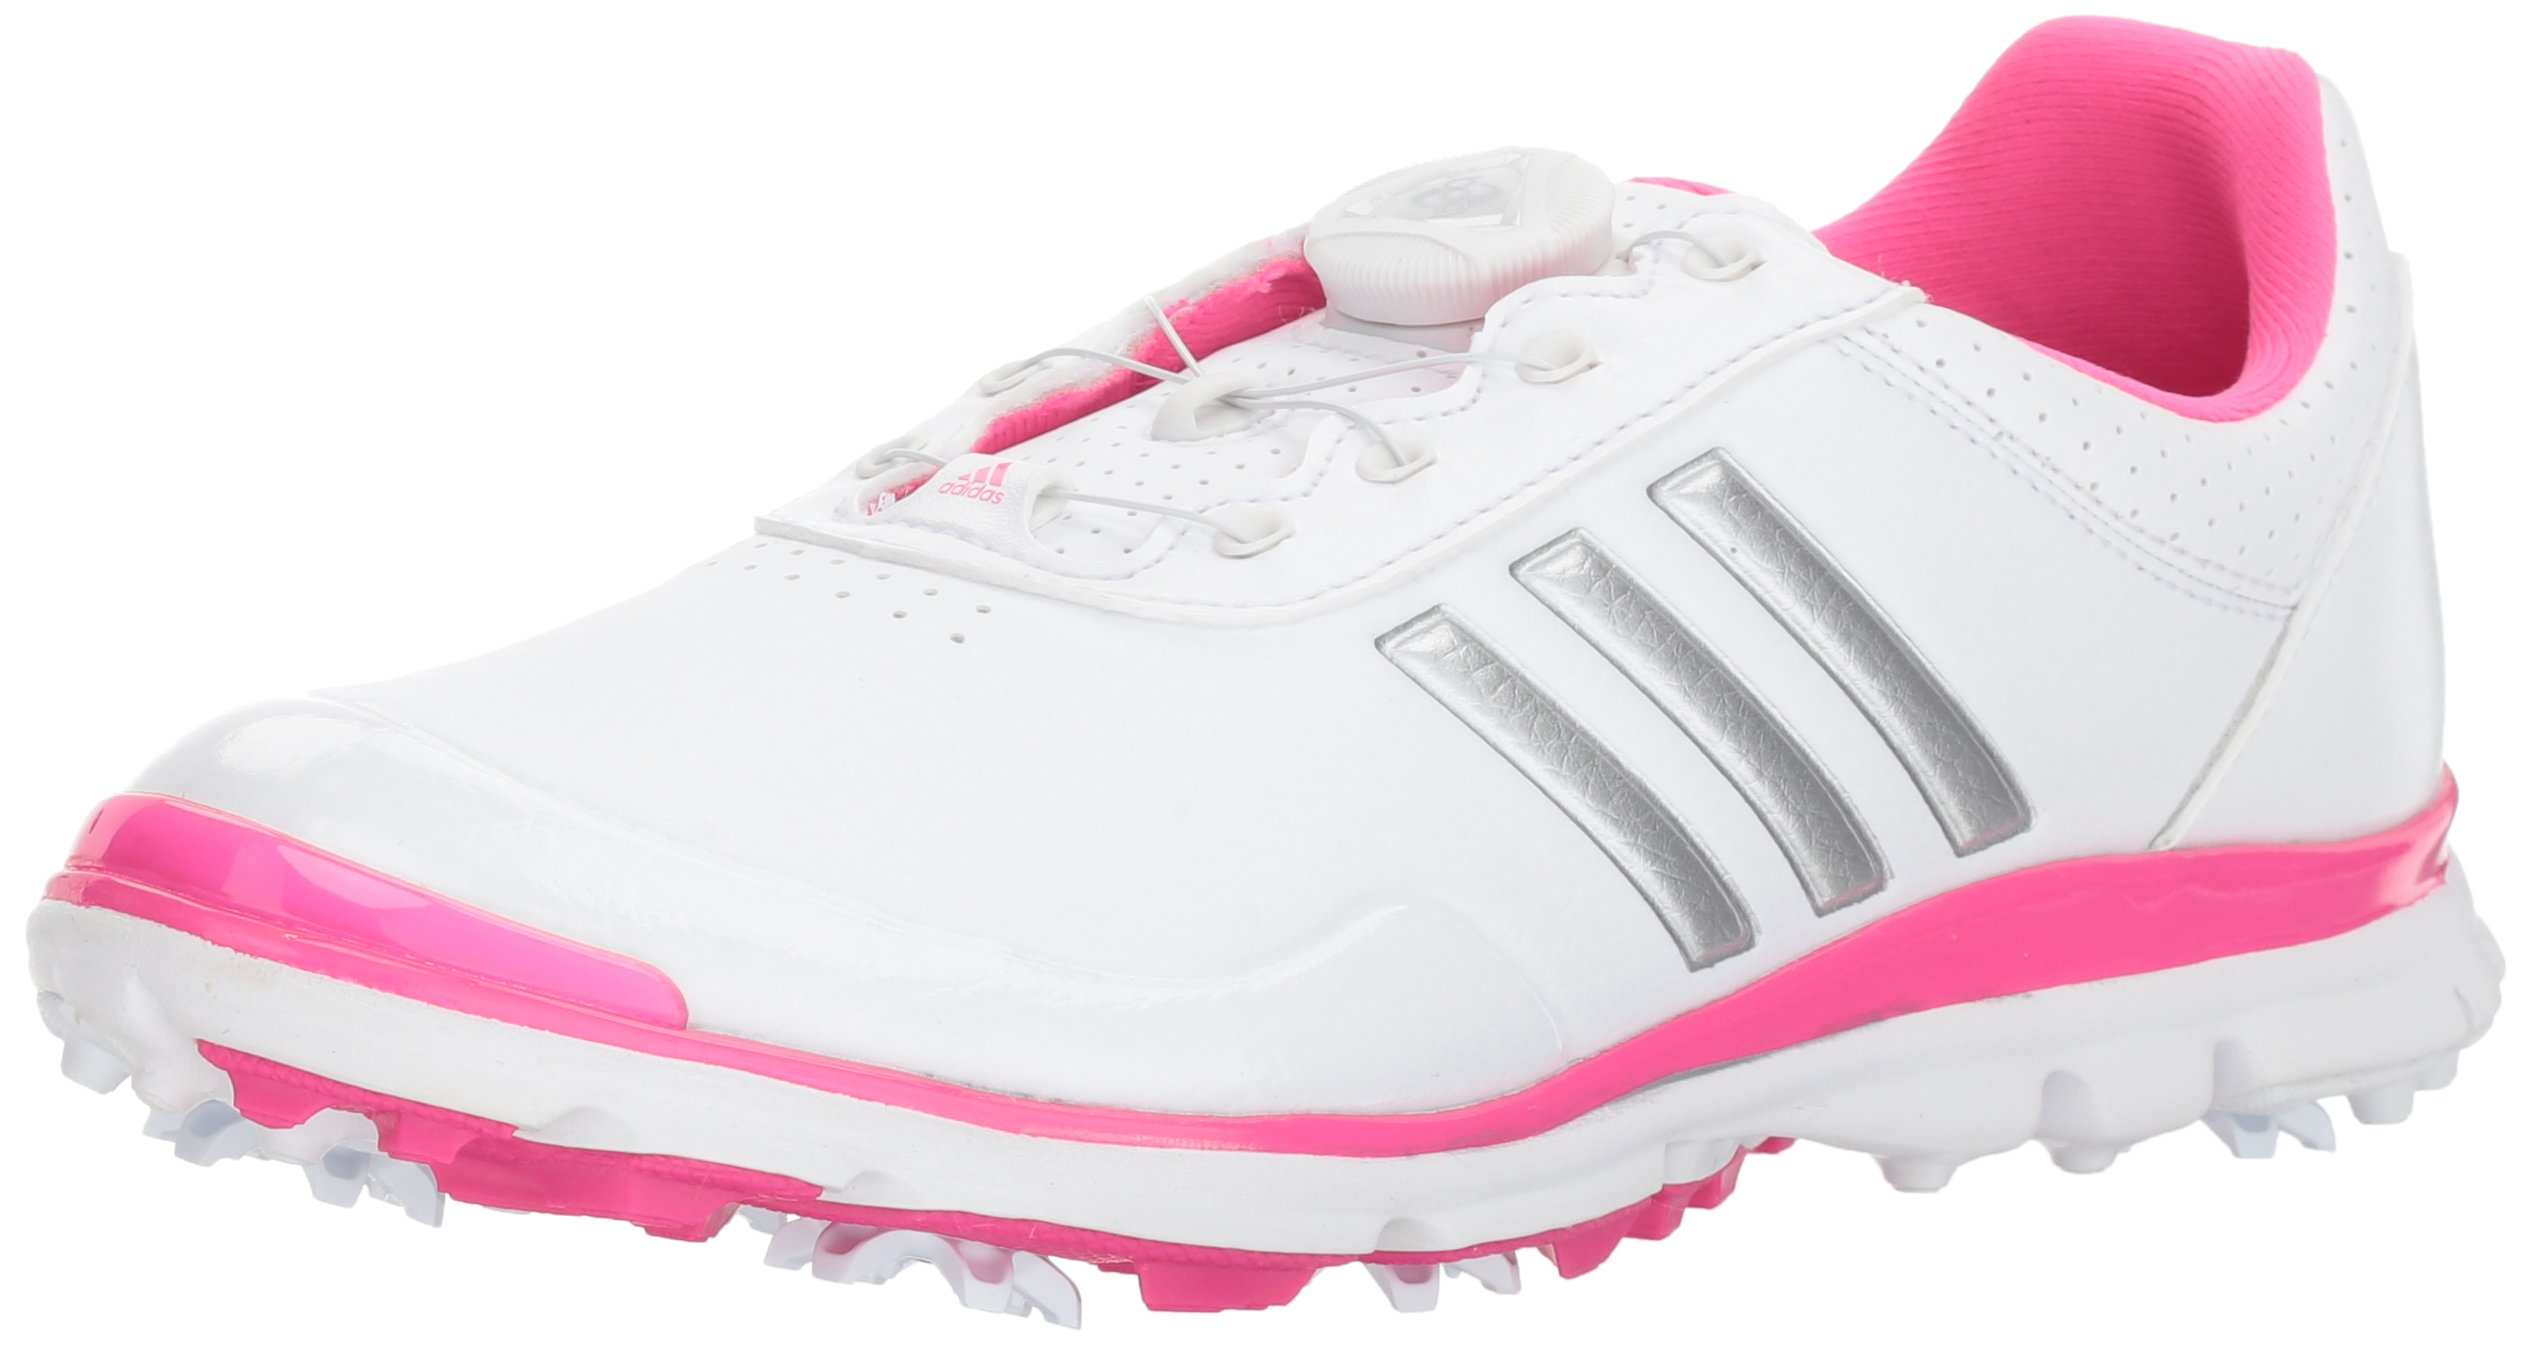 adidas Women's Adistar Lite BOA Golf Shoe, White/Silver Metallic/Shock Pink S, 6.5 M US by adidas